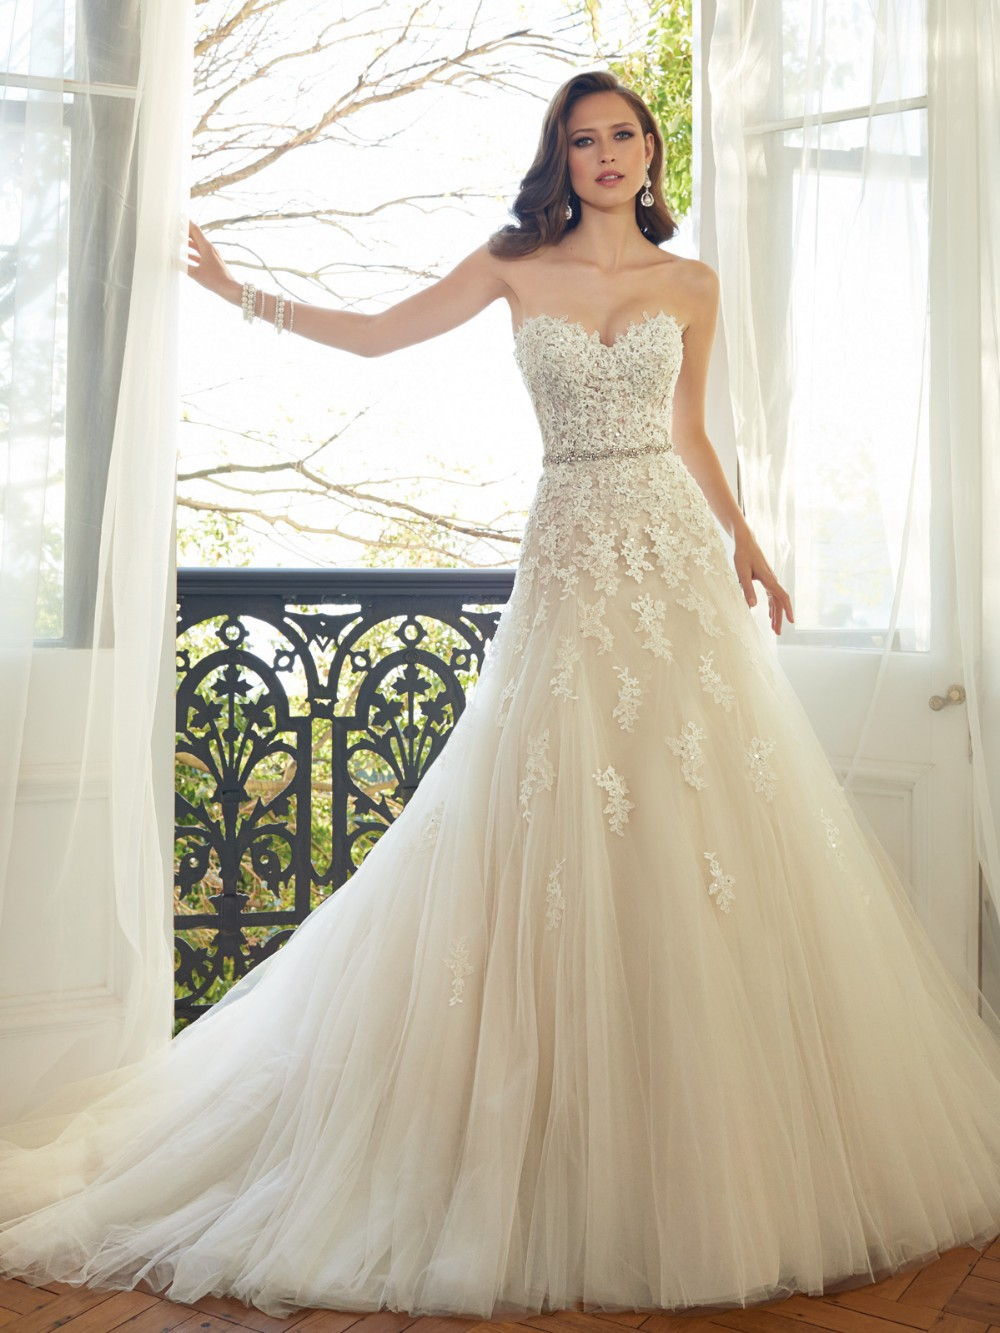 Elegant Sweetheart Light Champagne Lace Applique Wedding Dress With Color Beading Sash Bridal Gowns Robe De Mariage